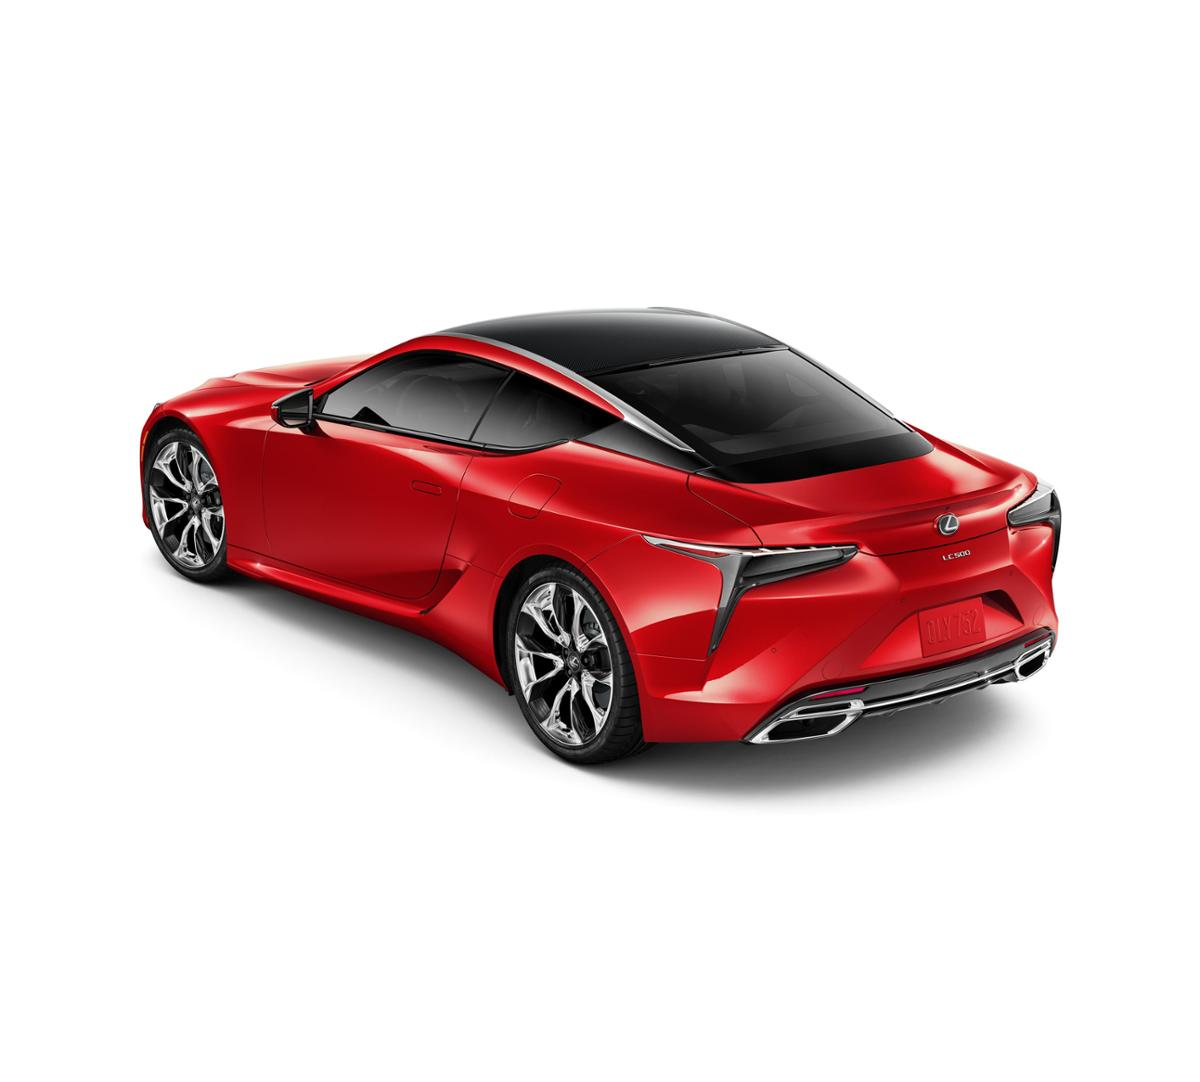 Brentwood Infrared 2018 Lexus LC 500: New Car For Sale